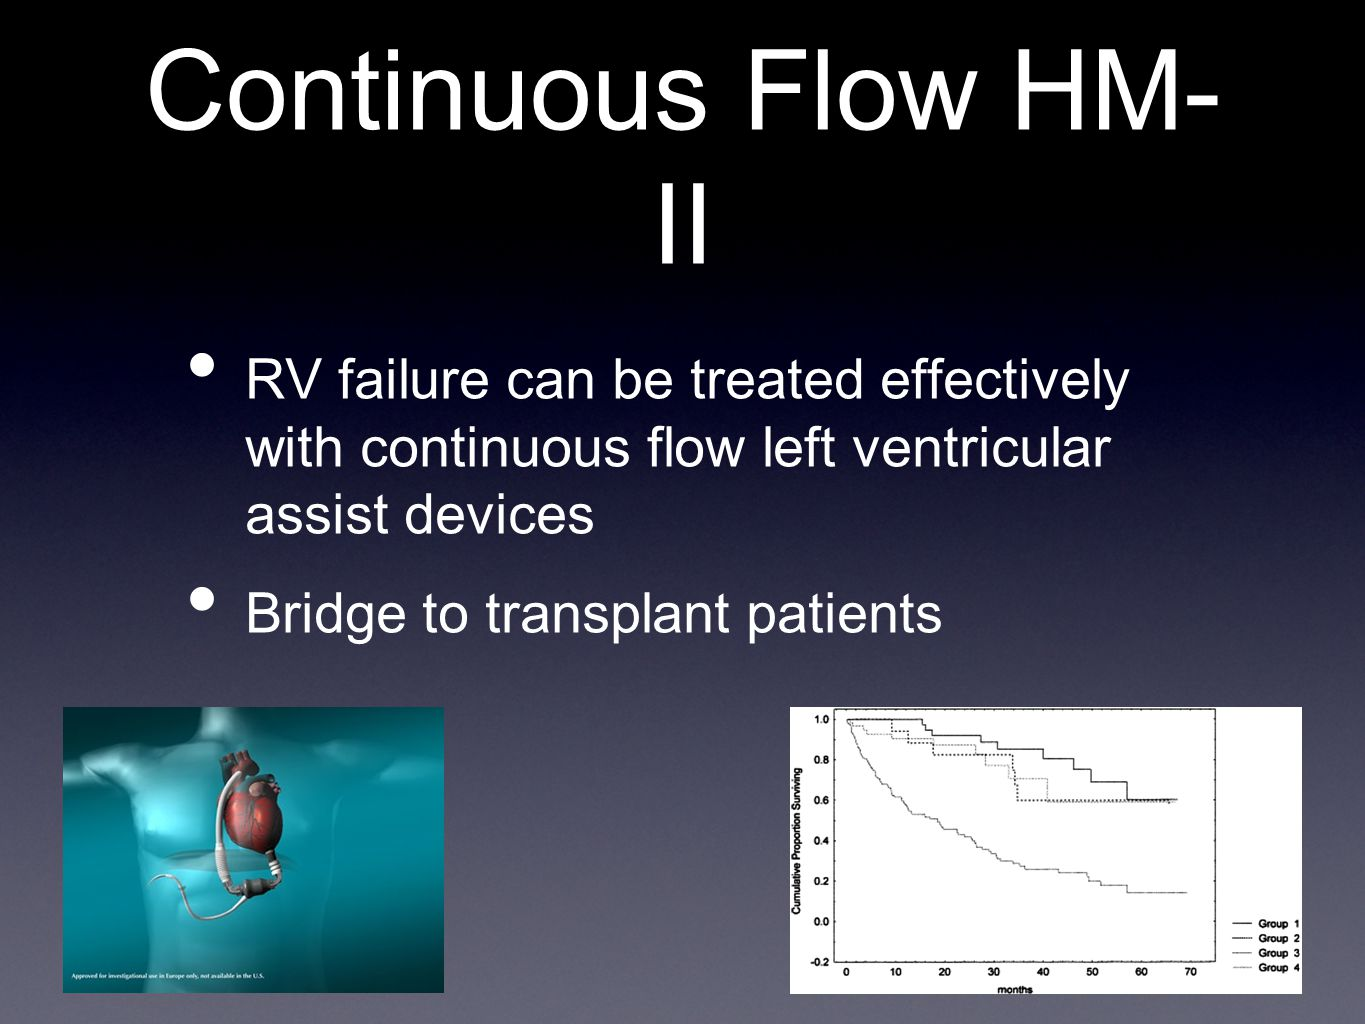 Continuous Flow HM-II RV failure can be treated effectively with continuous flow left ventricular assist devices.